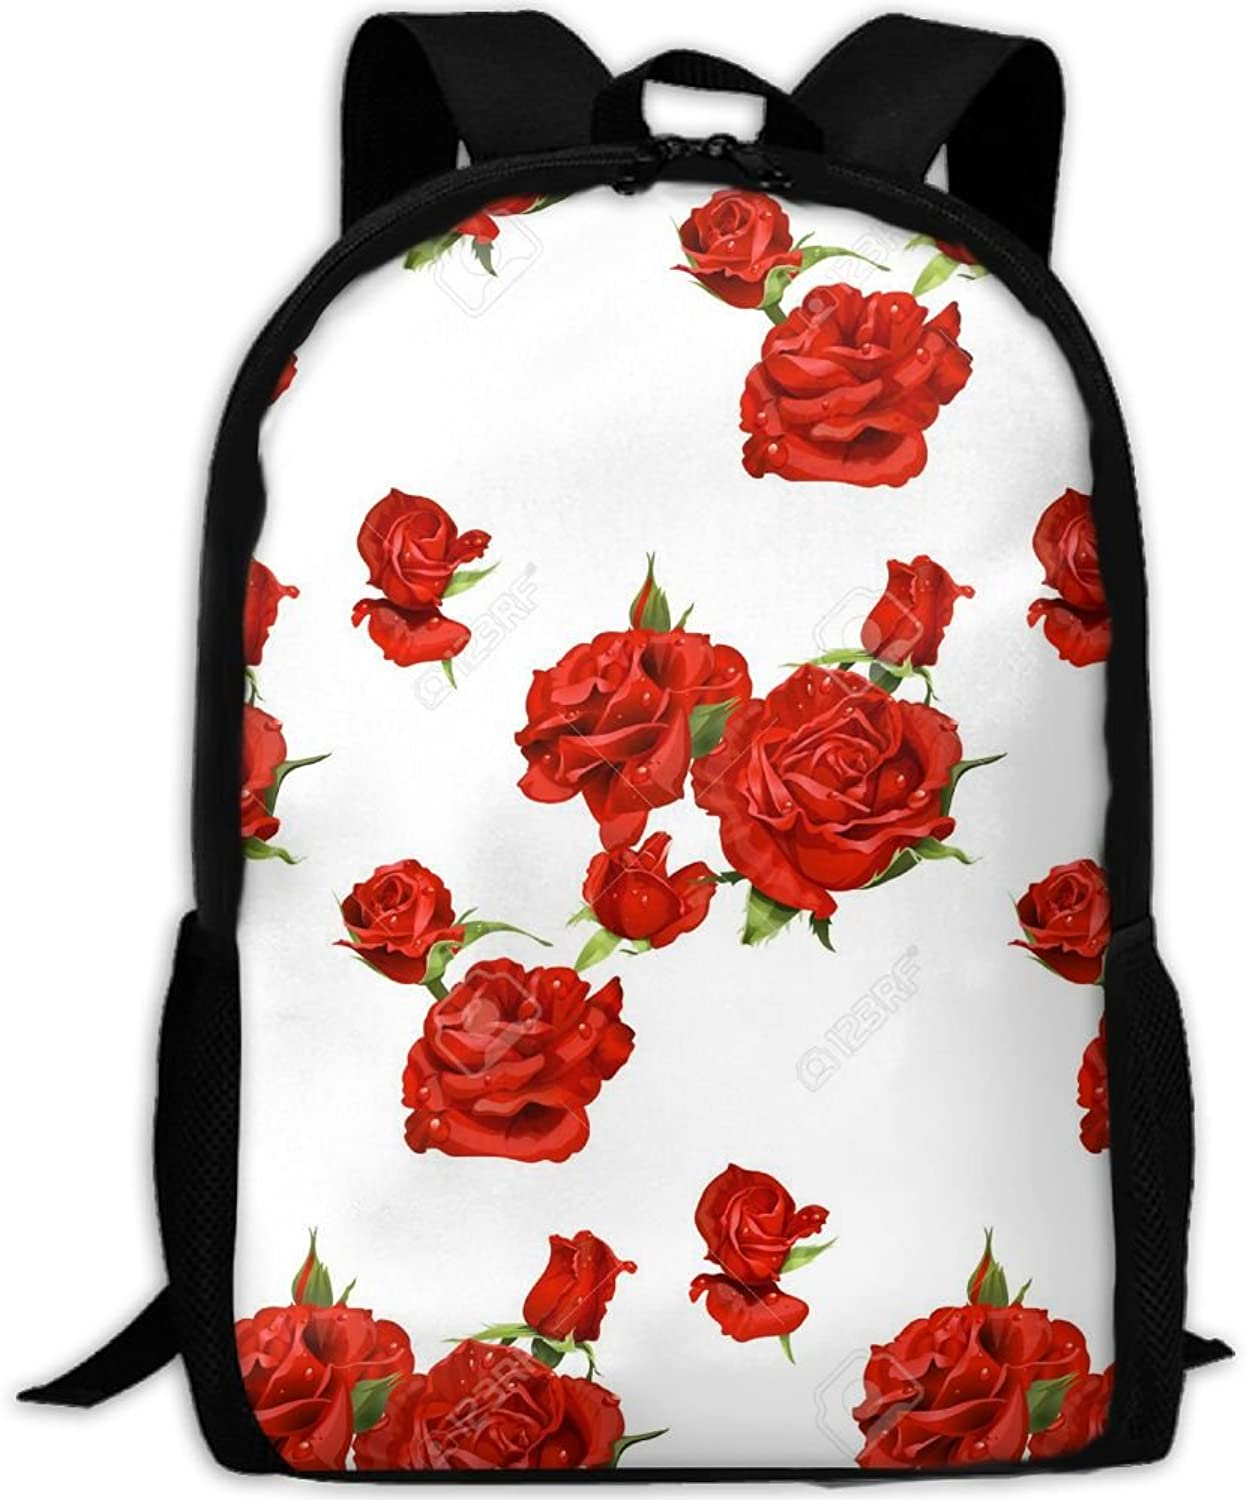 2f8e0cb27fc1 Backpack Laptop Travel Hiking School Bags pink Red Daypack Bag ...